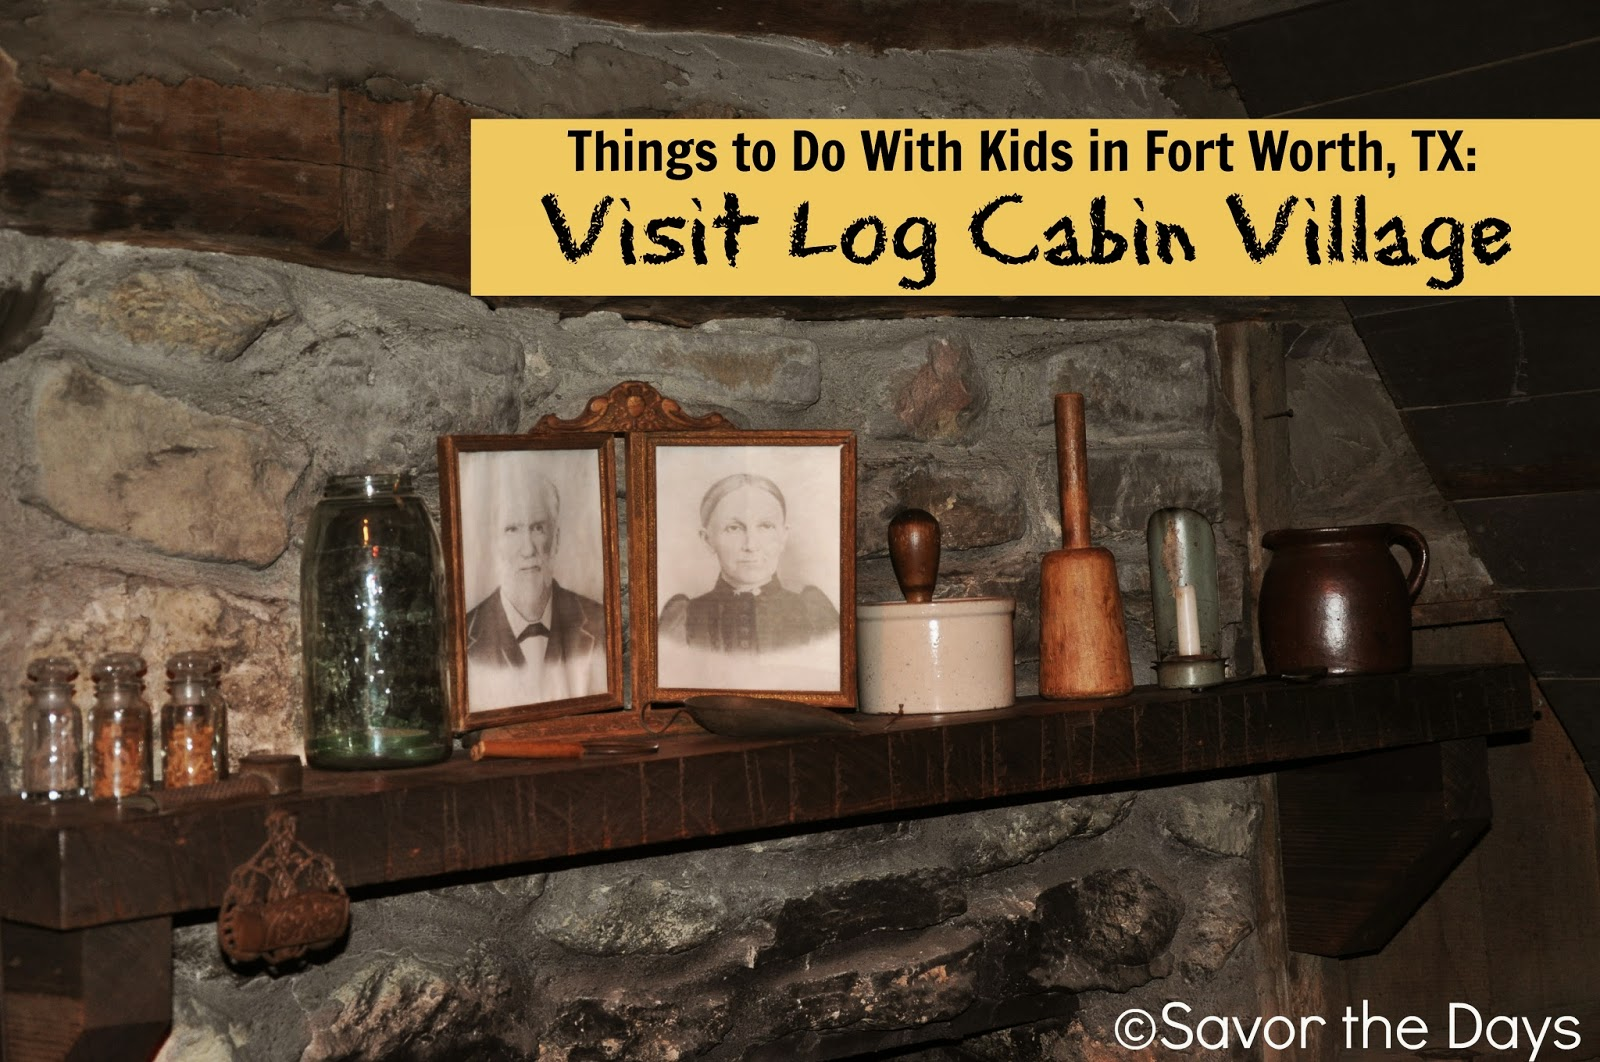 Things to Do With Kids in Fort Worth: Visit Log Cabin Village